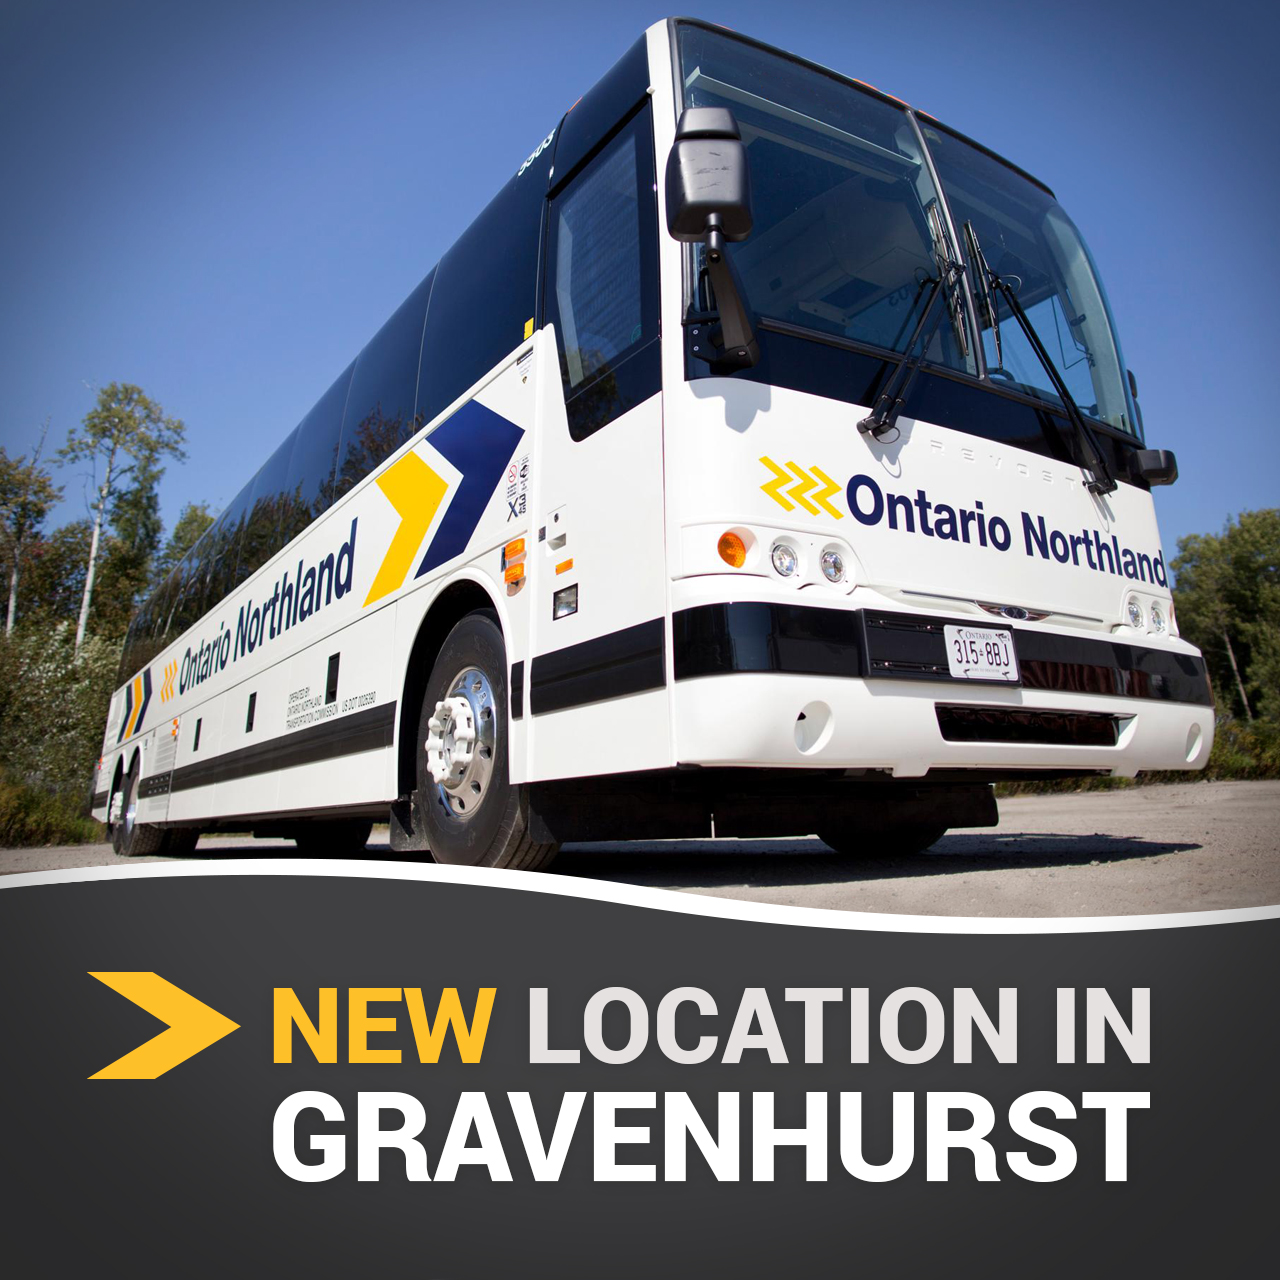 Ontario Northland Bus Service - New Gravenhurst Location